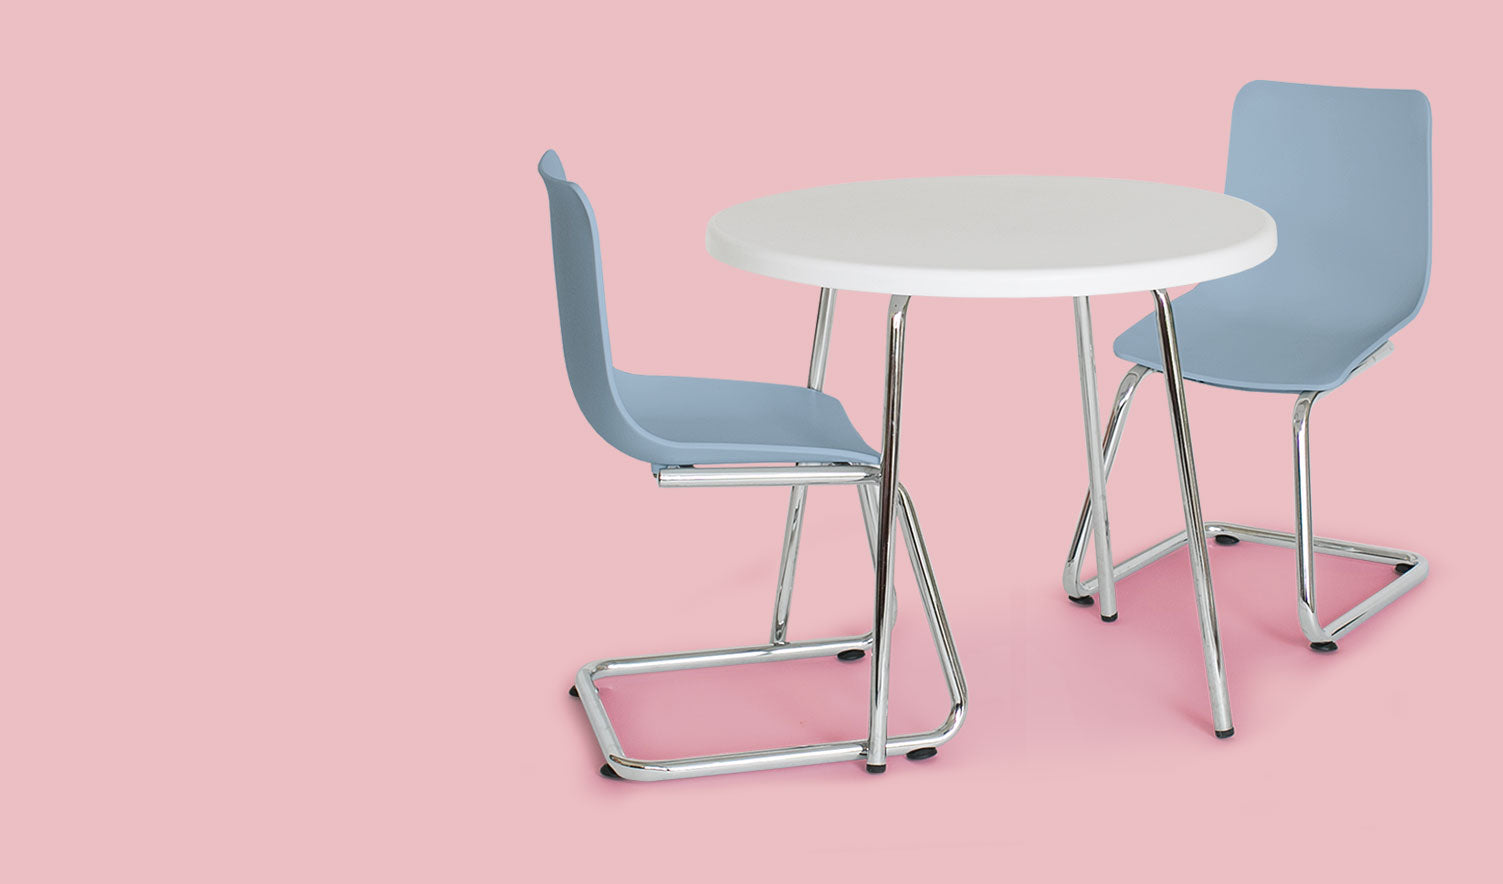 Modern Kids Round Table and Chairs - Chrome-plated, uniformed steel legs and molded plastic seat are strong enough to support repeated use from adults.